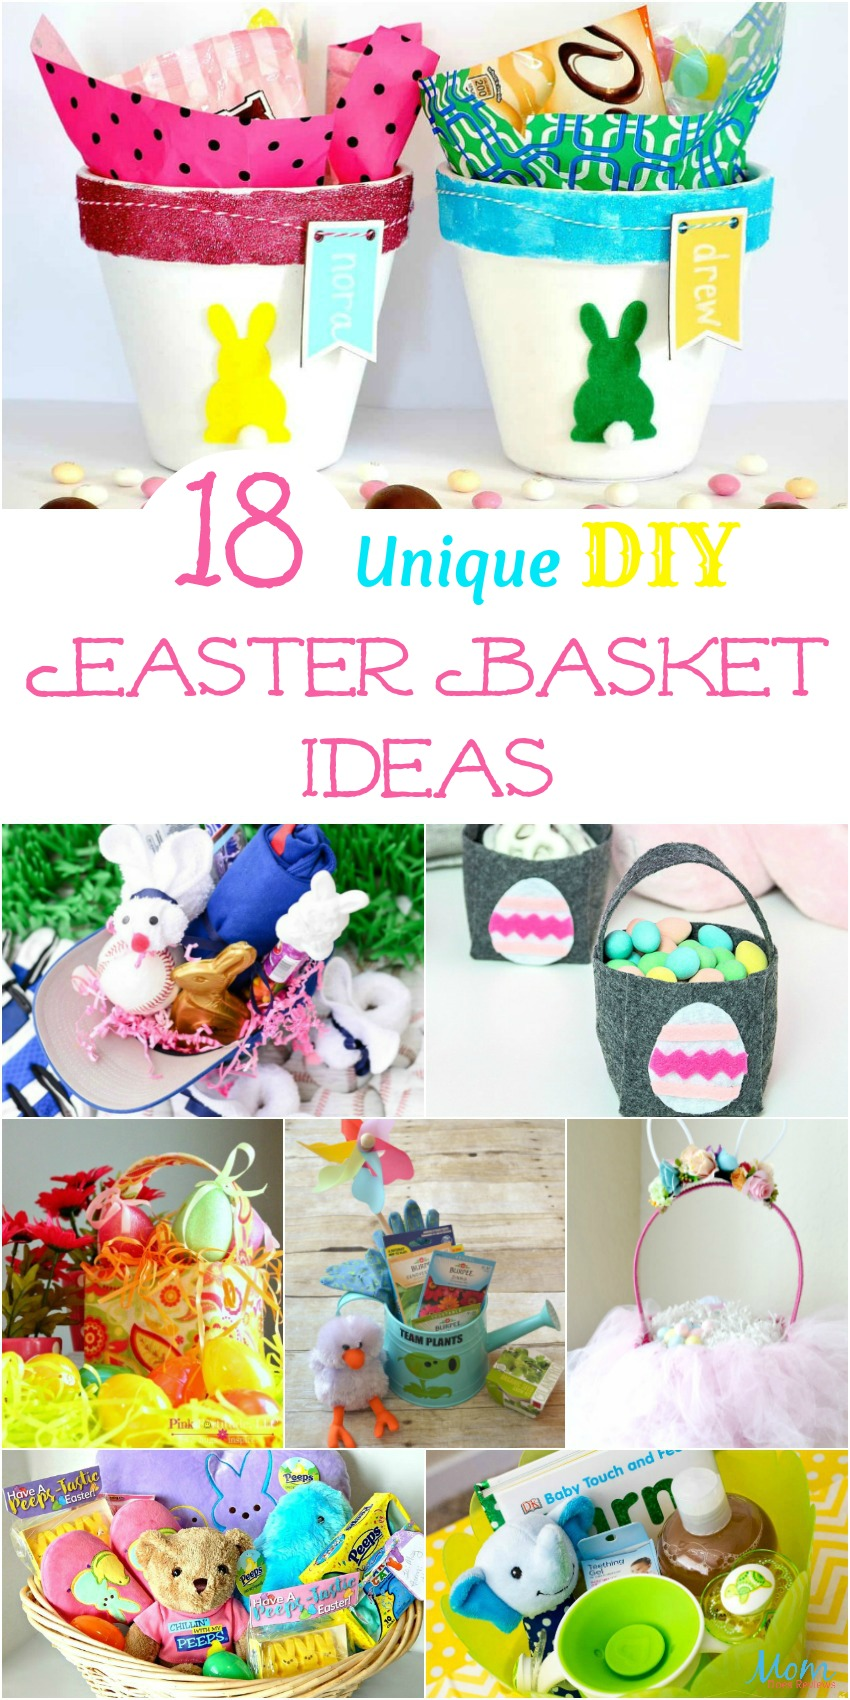 18 Unique DIY Easter Basket Ideas too Cute Not to Try! #easter #diy #easterbunny #easterbasket #crafts